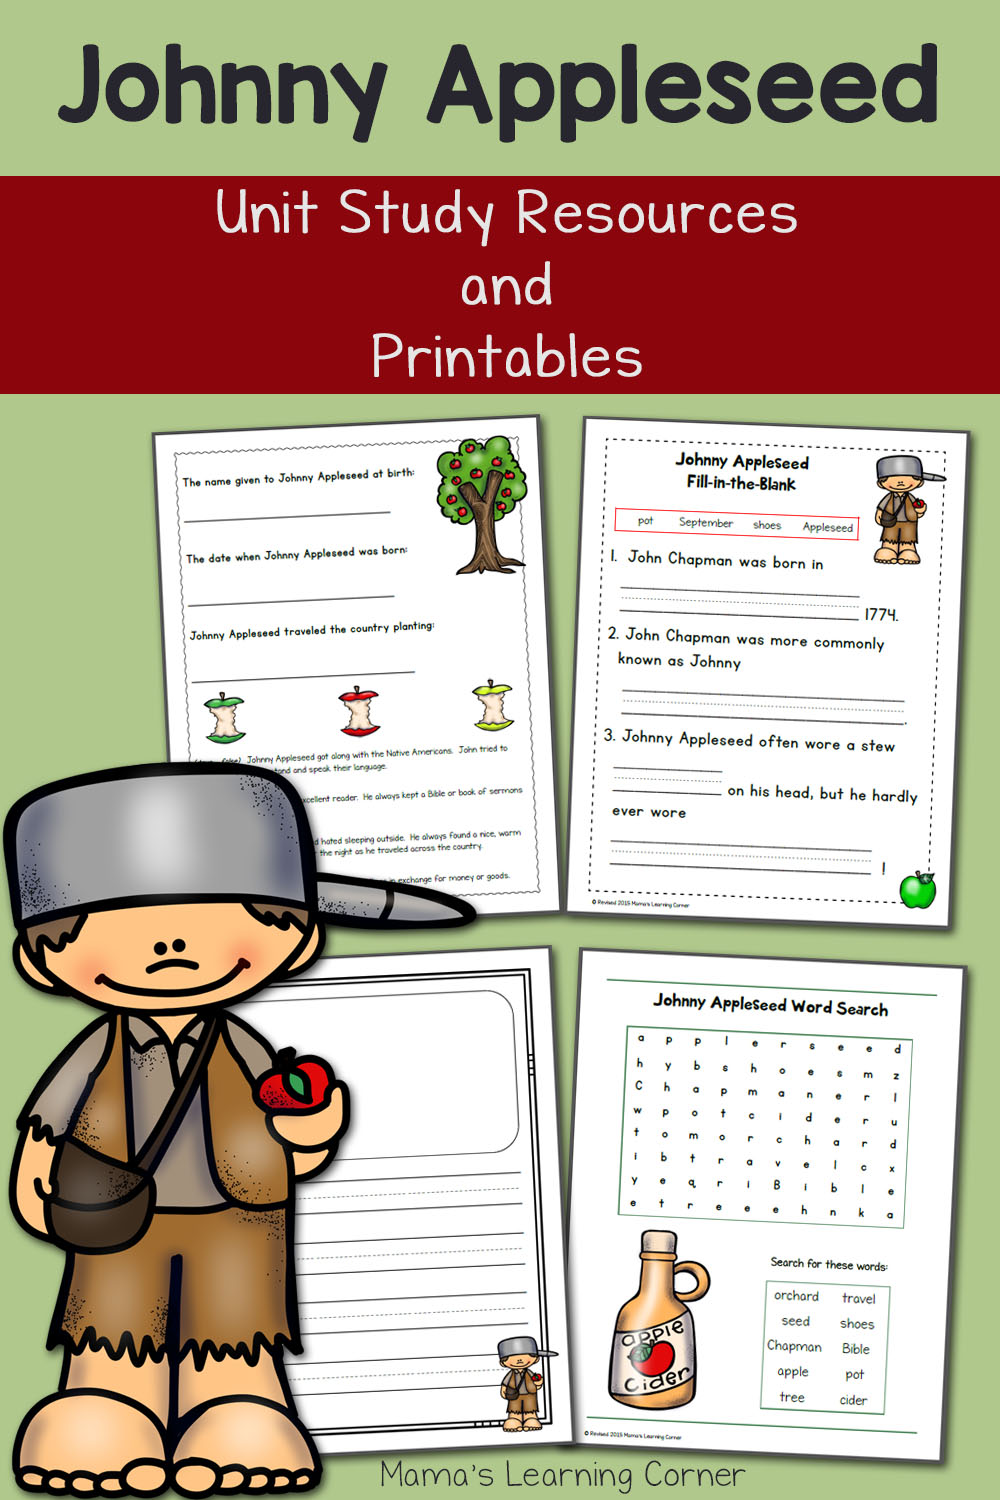 Johnny Appleseed Printables and Unit Study Resources - Mamas